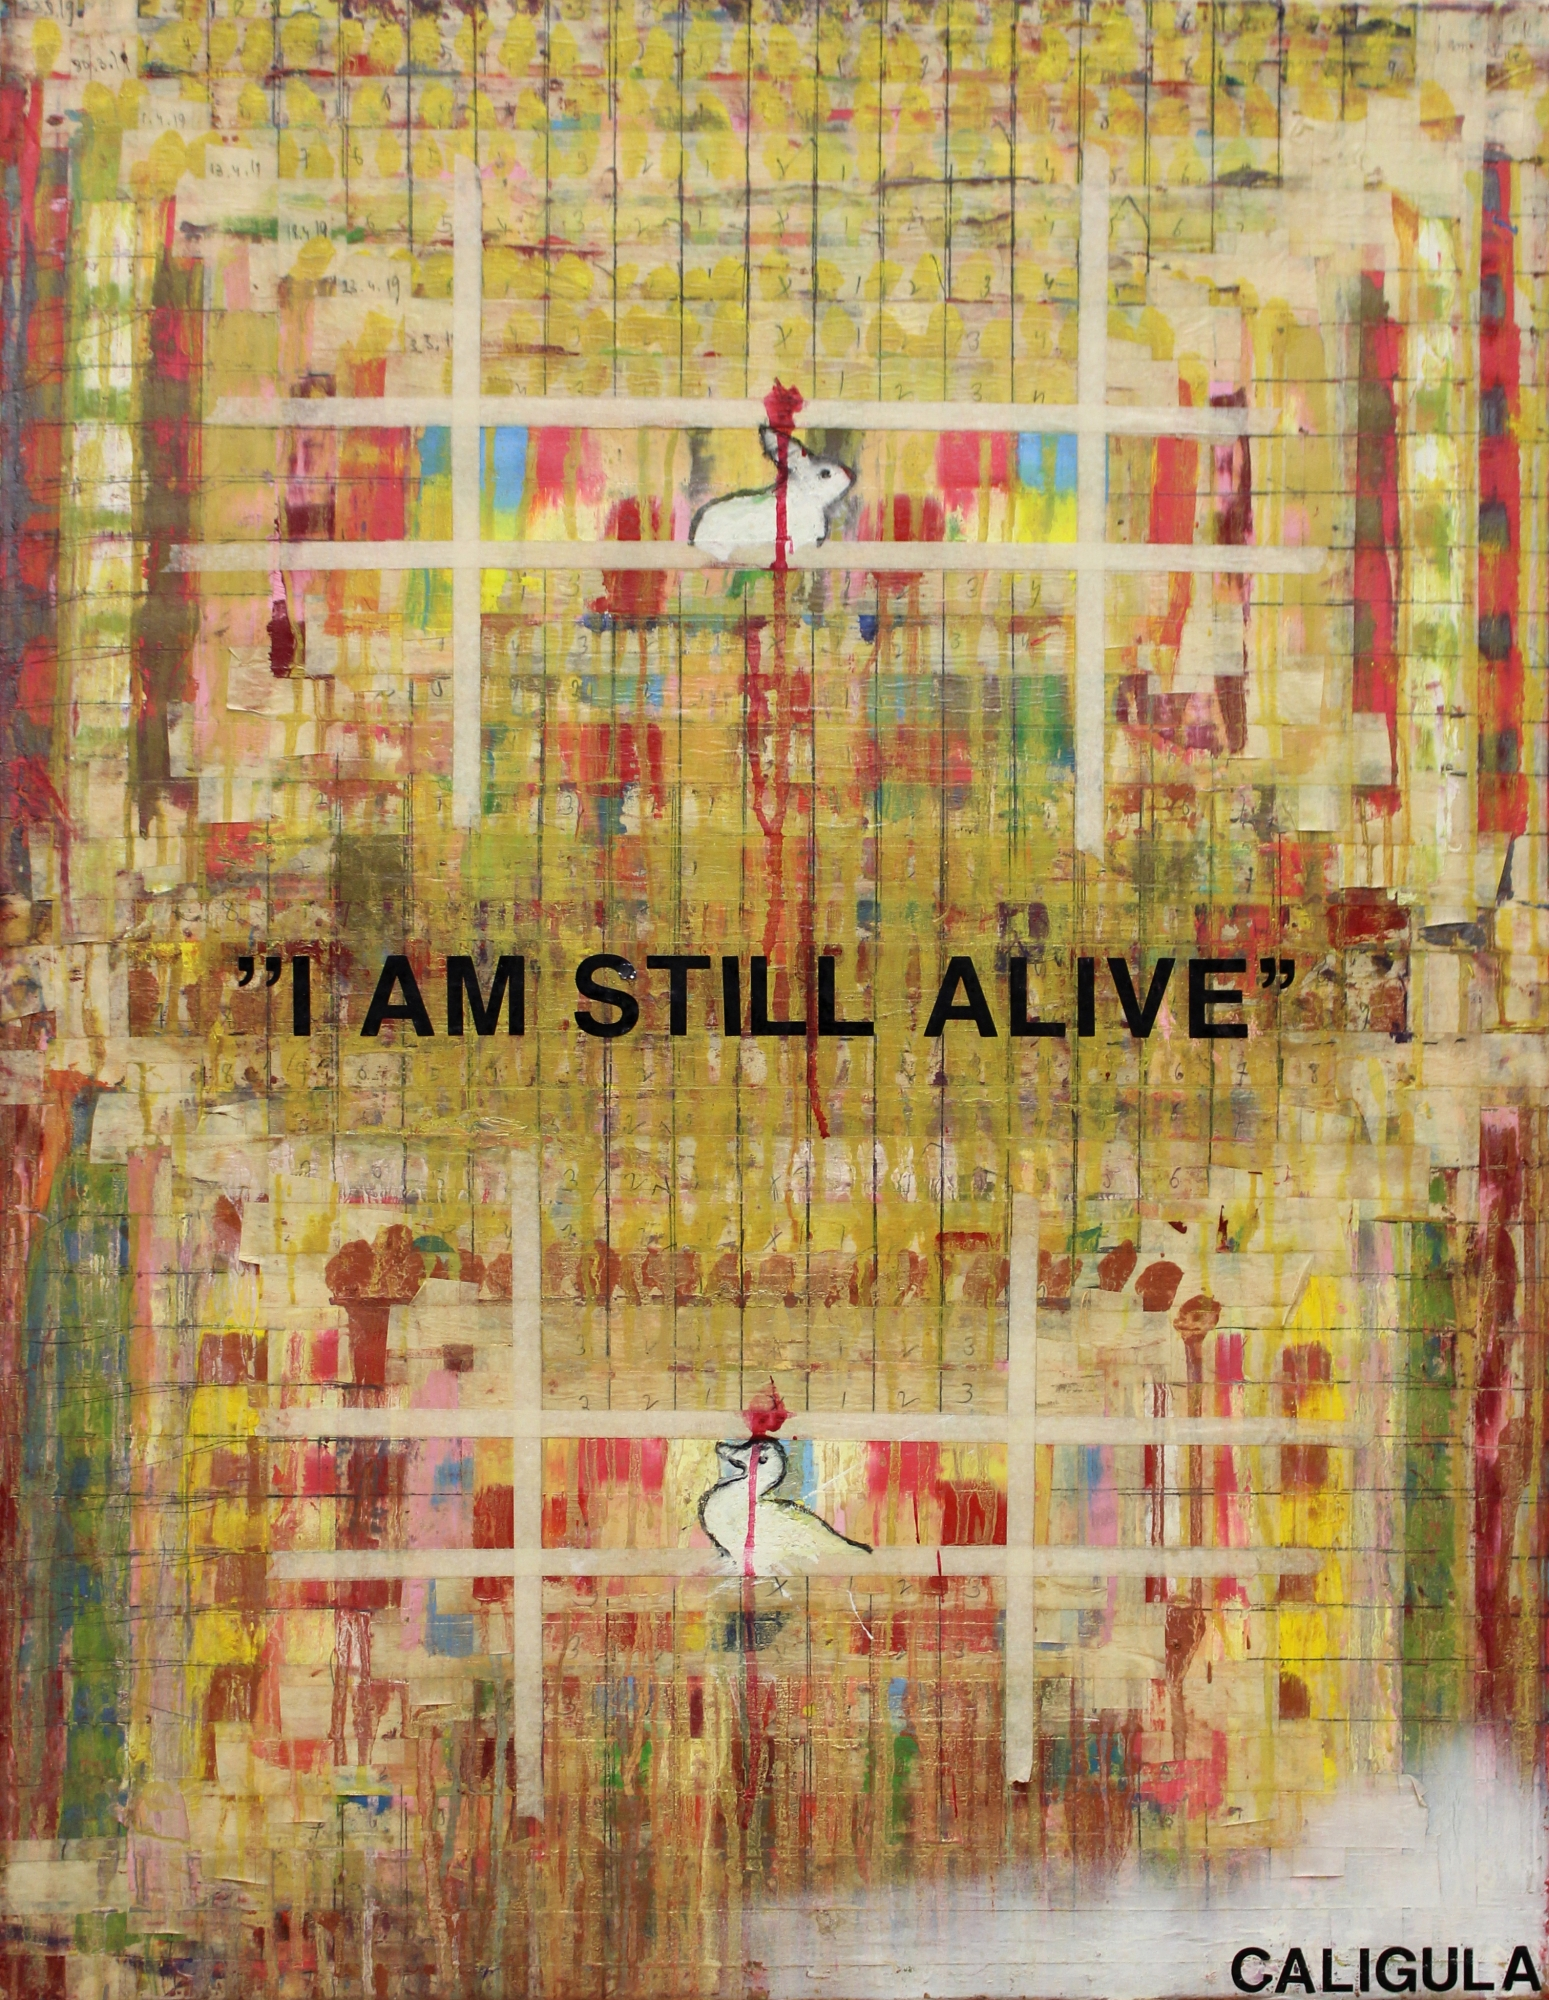 I am still alive - 2018